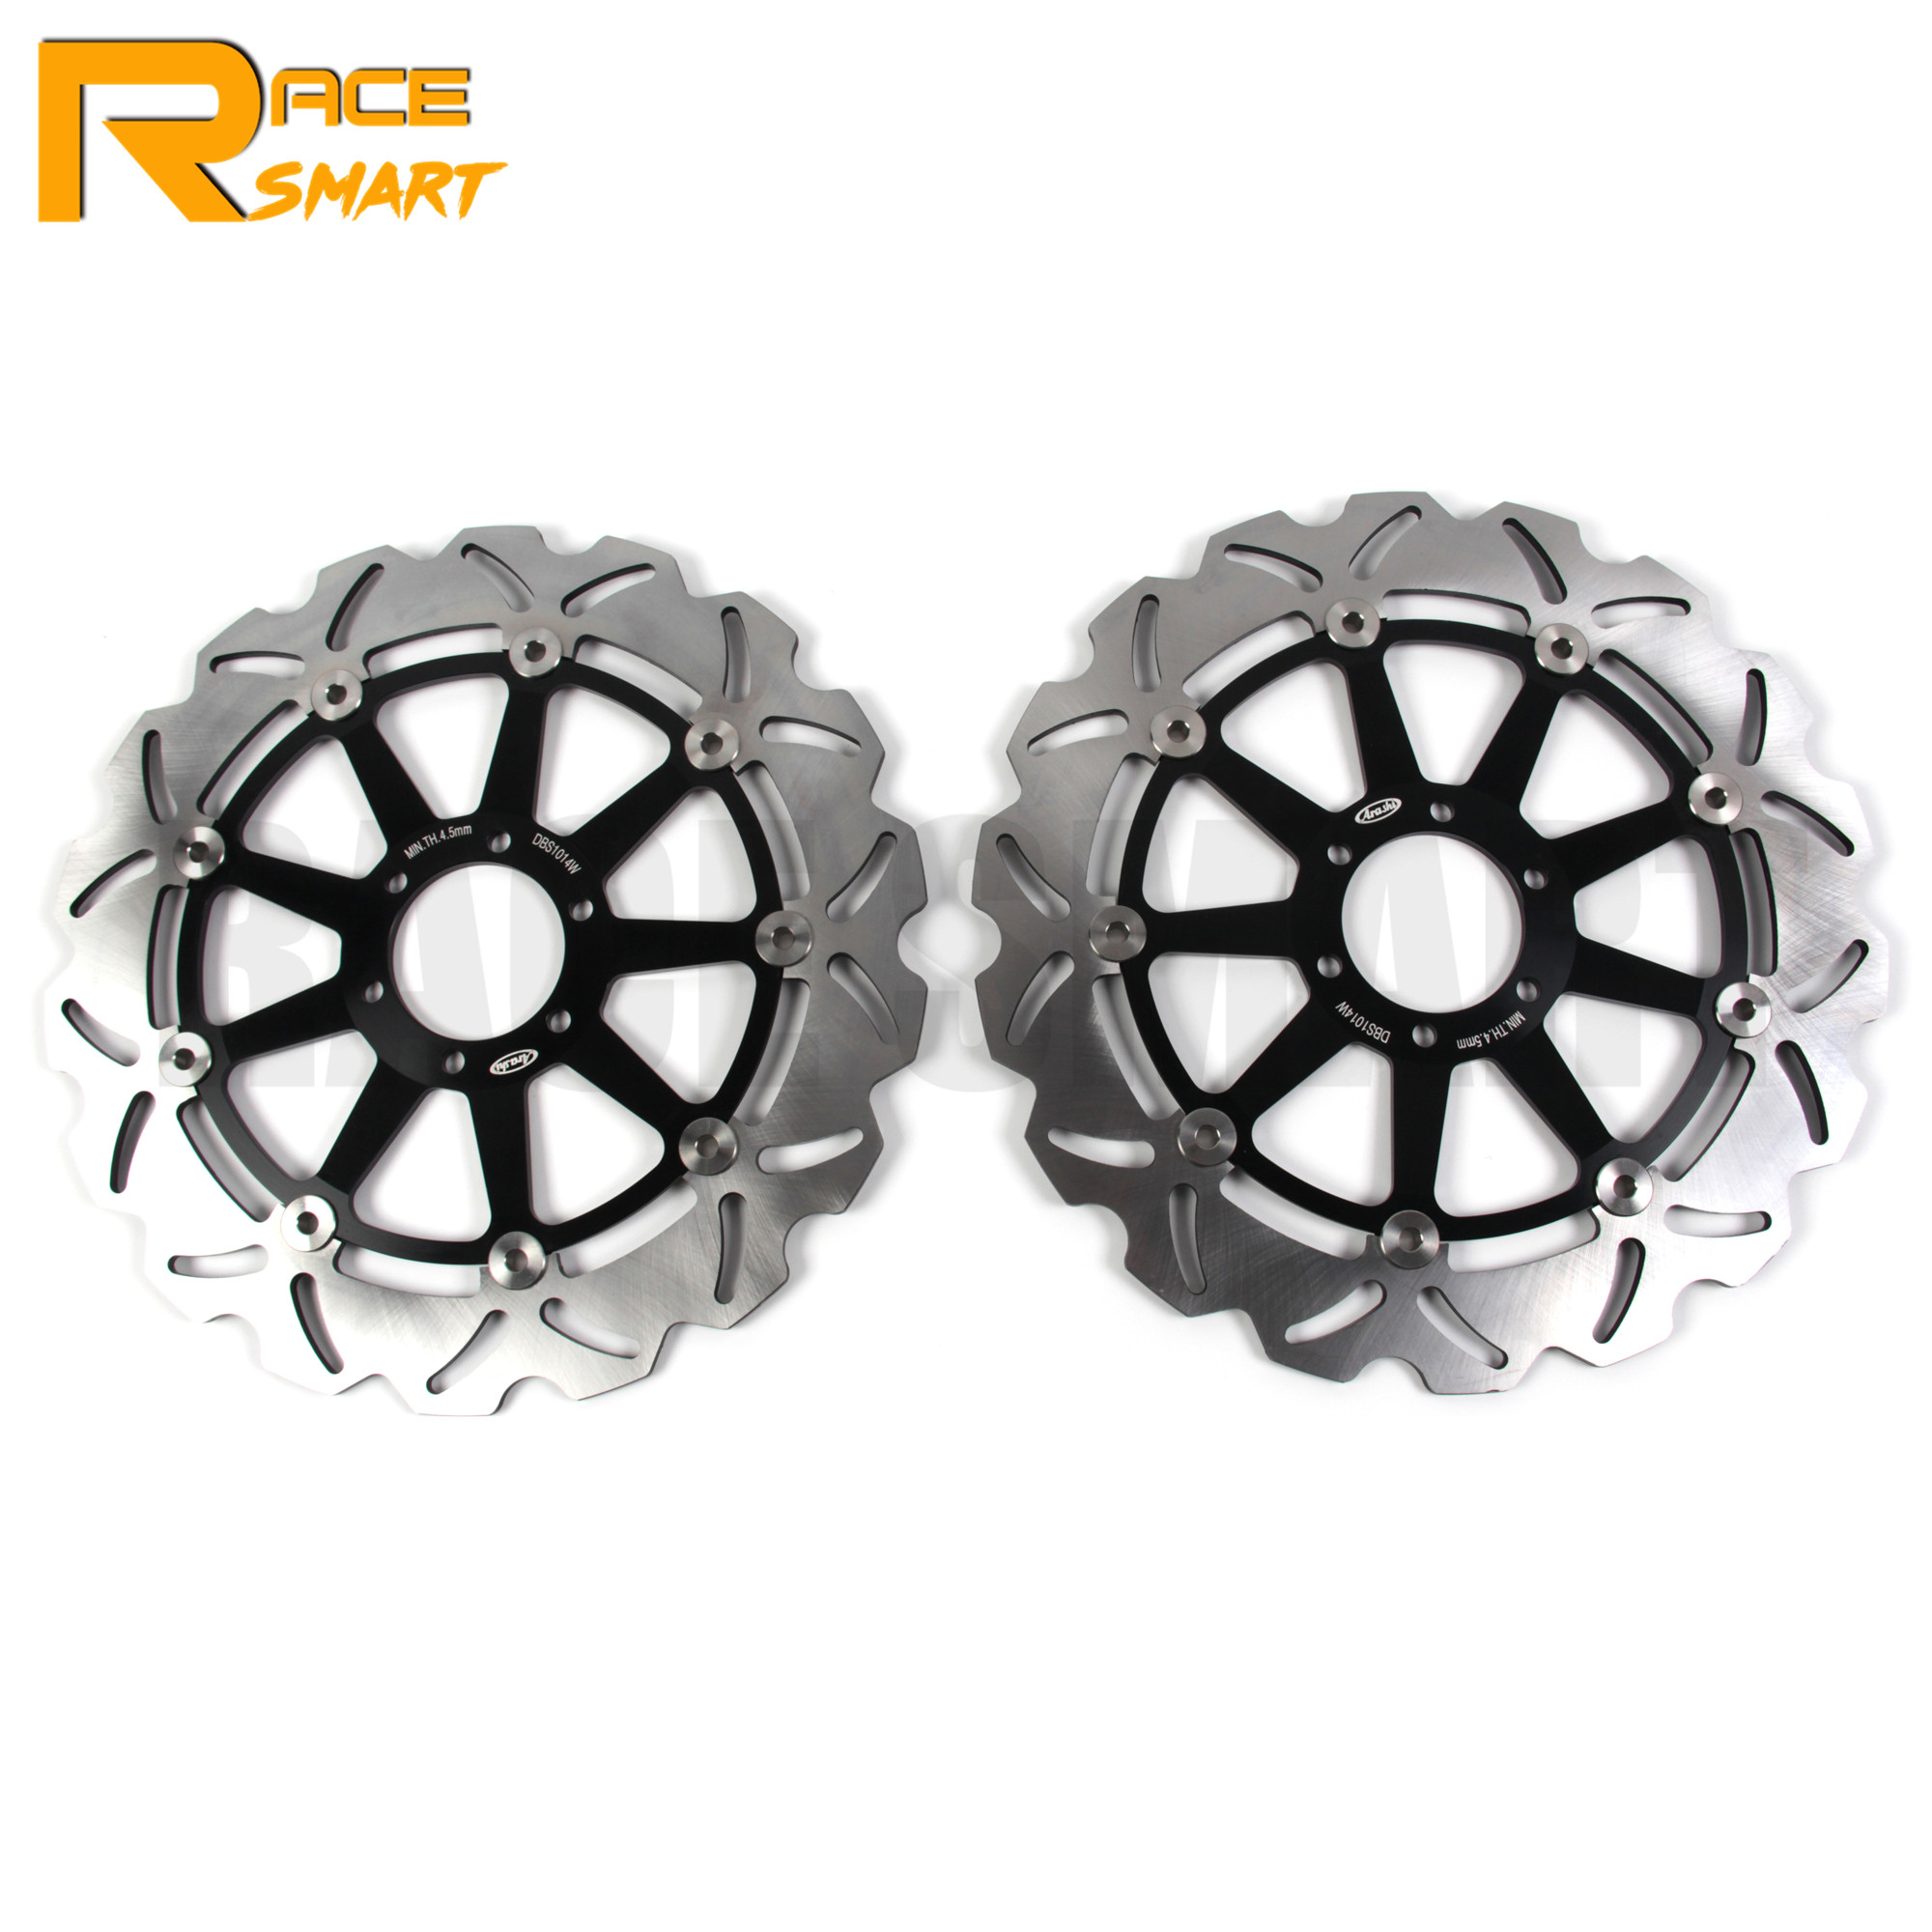 Motorcycle <font><b>1</b></font> Pair CNC Front Brake Disks For BIMOTA YB7 <font><b>400</b></font> 1989 Discs Rotors <font><b>V</b></font>-DUE 500 1997-2000 VDUE500 1997 1998 1999 2000 image